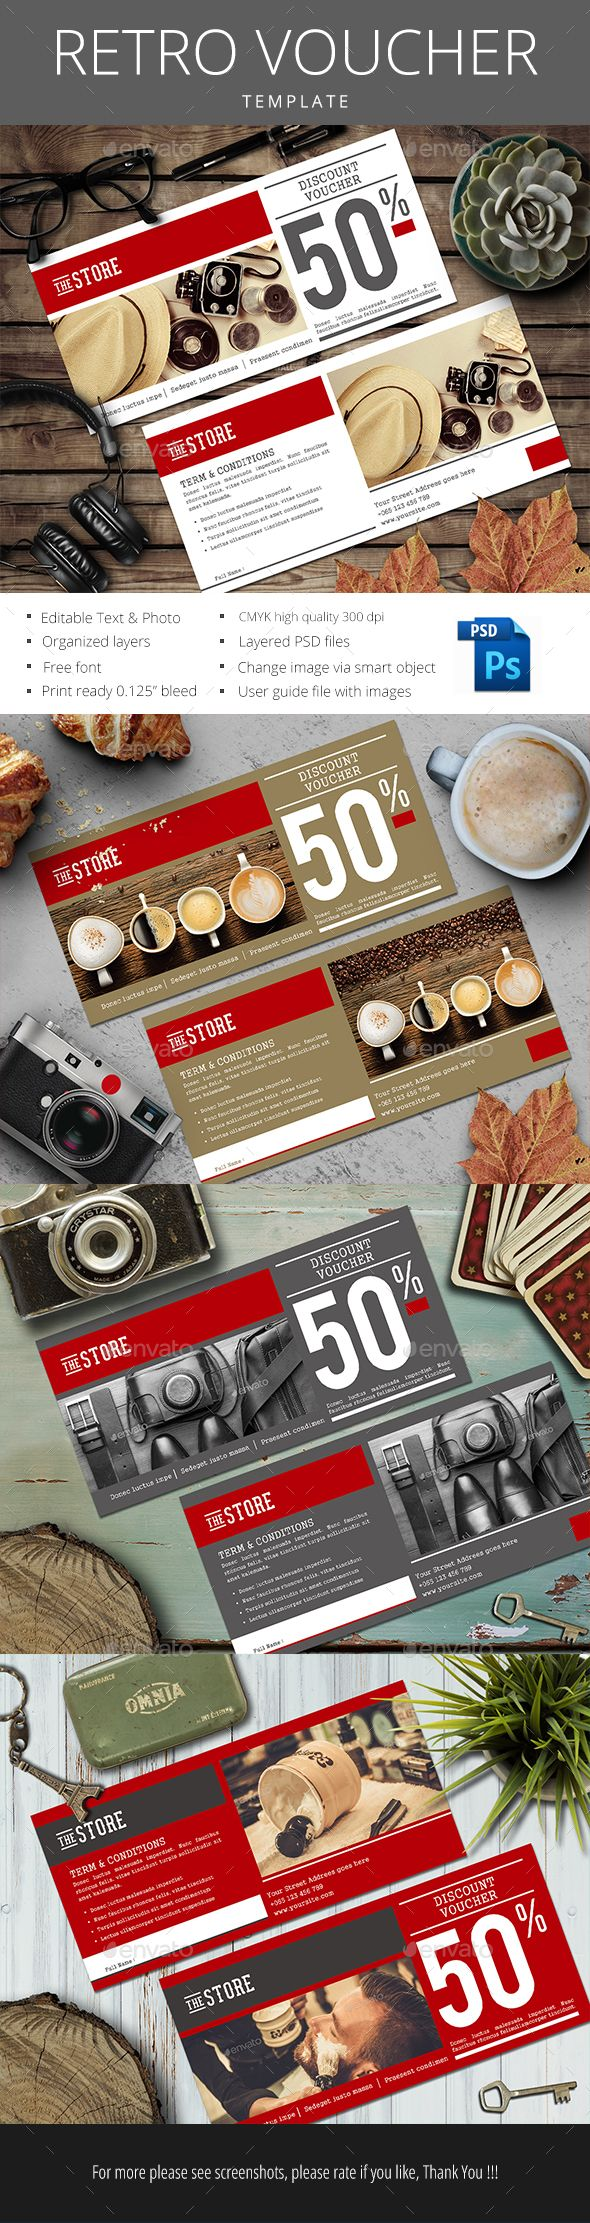 Create A Voucher 30 Best Ticket Images On Pinterest  Gift Vouchers Coupon Design .